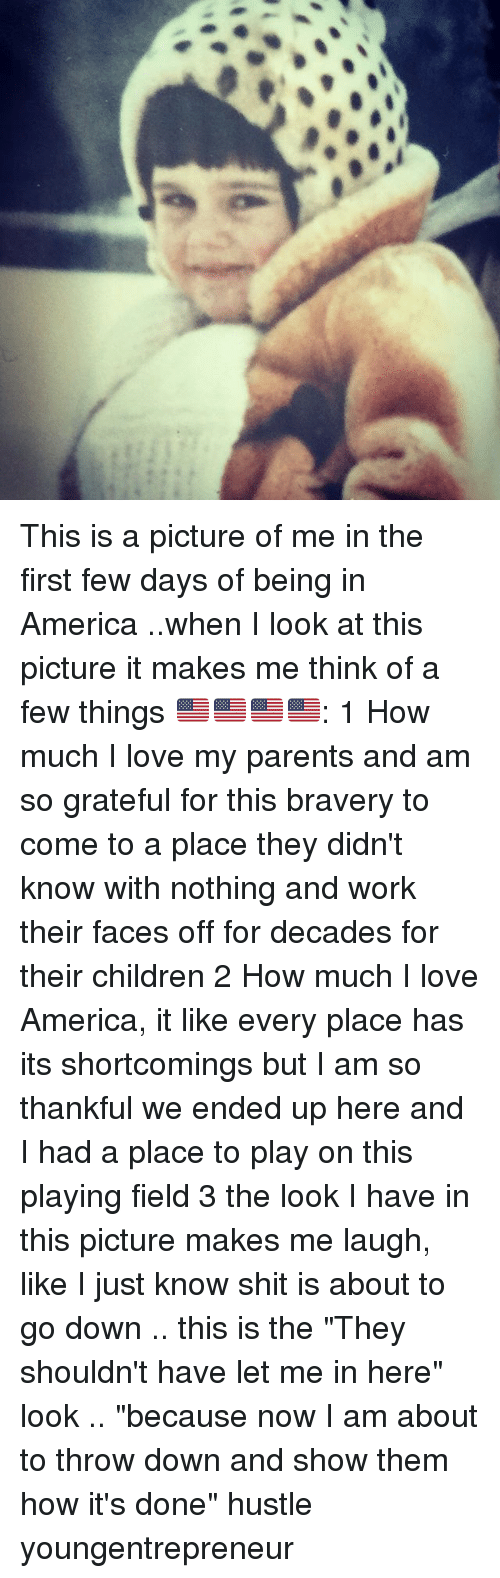 """Throw Down: This is a picture of me in the first few days of being in America ..when I look at this picture it makes me think of a few things 🇺🇸🇺🇸🇺🇸🇺🇸: 1 How much I love my parents and am so grateful for this bravery to come to a place they didn't know with nothing and work their faces off for decades for their children 2 How much I love America, it like every place has its shortcomings but I am so thankful we ended up here and I had a place to play on this playing field 3 the look I have in this picture makes me laugh, like I just know shit is about to go down .. this is the """"They shouldn't have let me in here"""" look .. """"because now I am about to throw down and show them how it's done"""" hustle youngentrepreneur"""